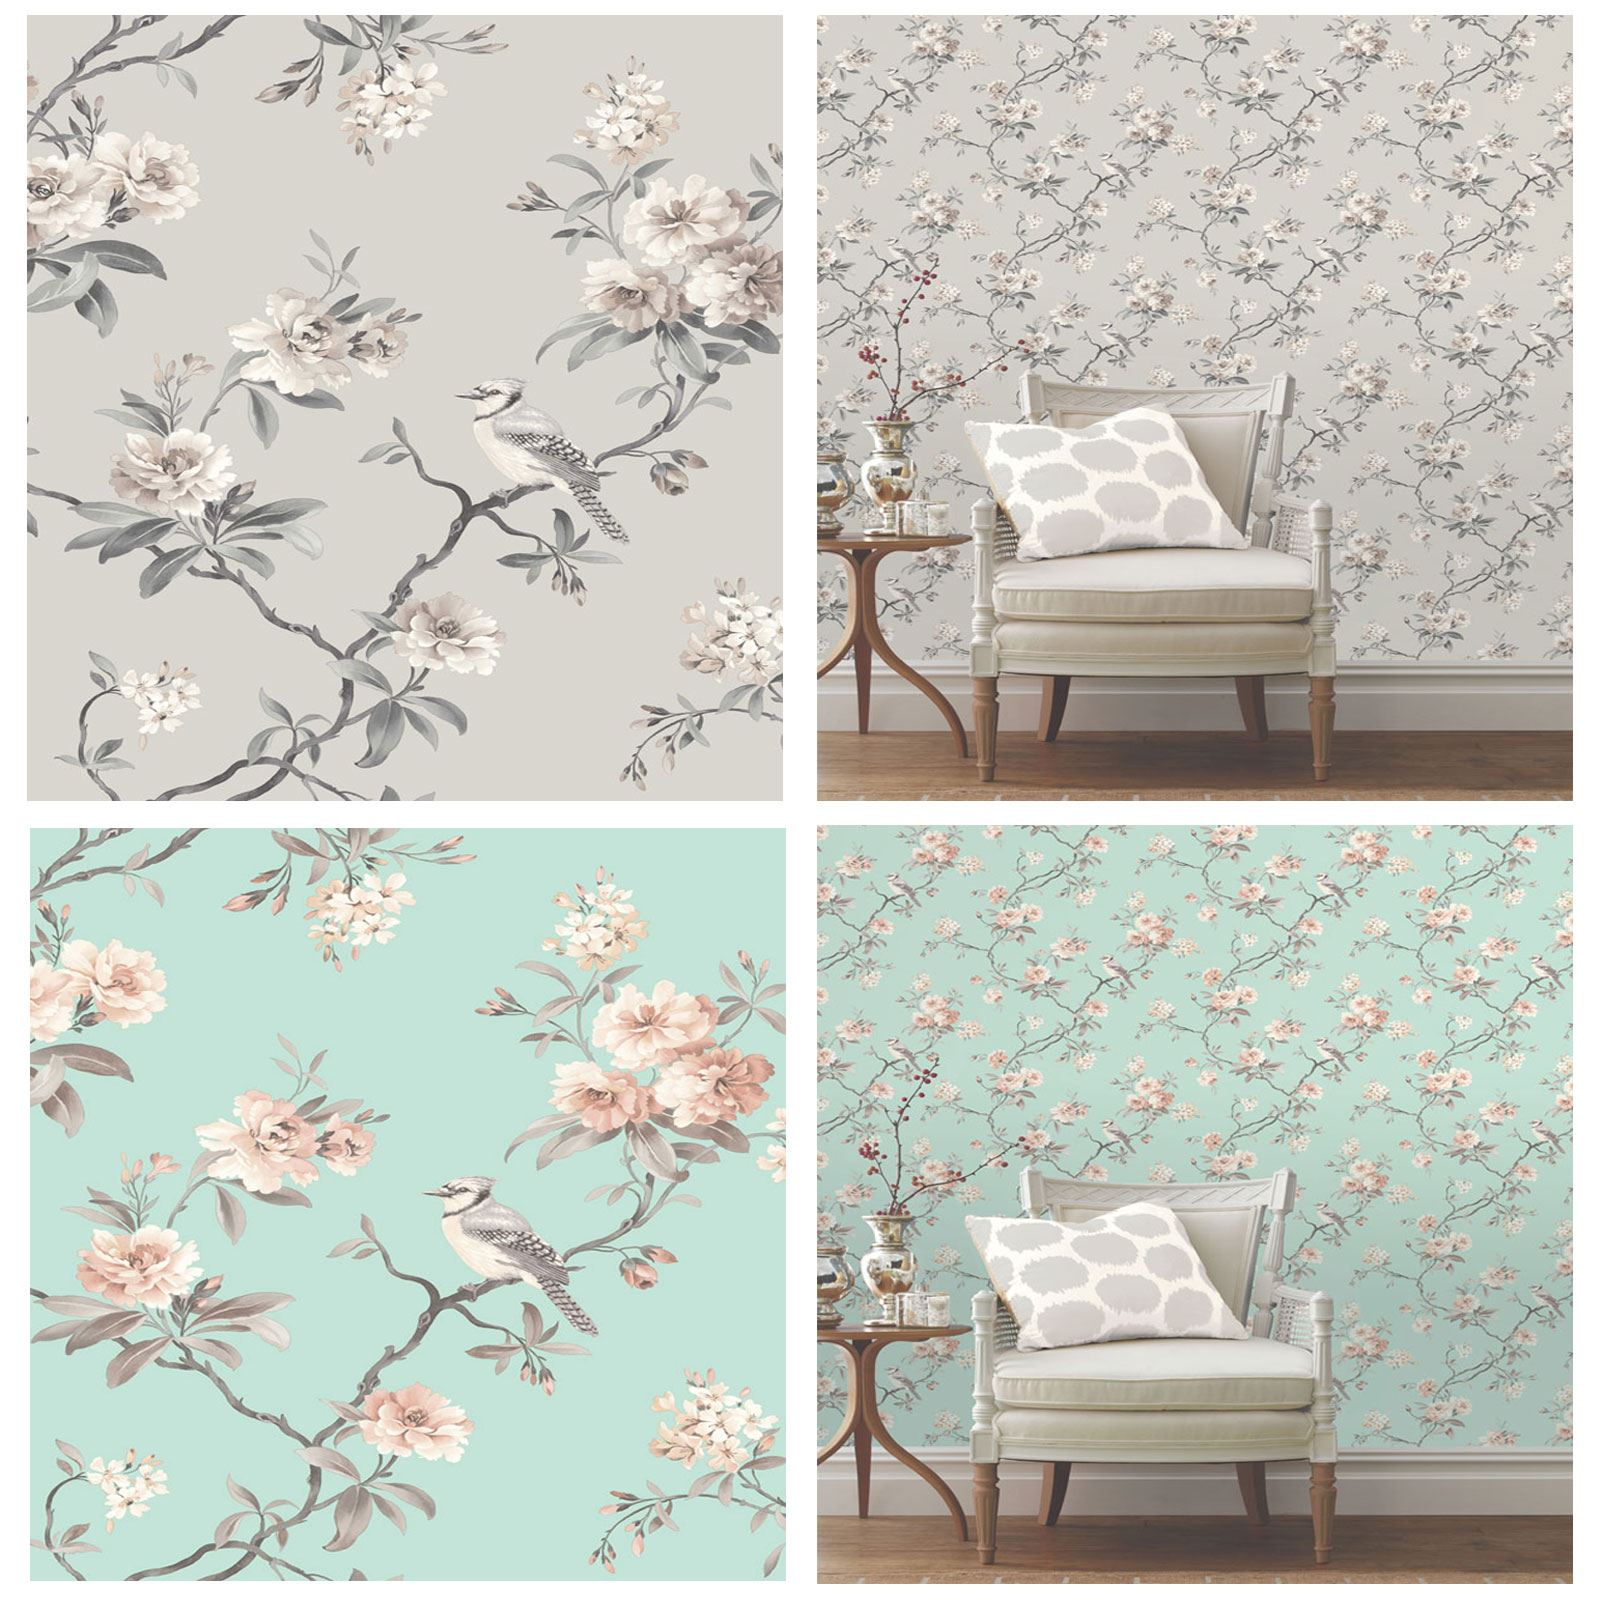 Newcastle United Bedroom Wallpaper Bedroom Decor Dark Wood Creative Apartment Bedroom Quirky Bedroom Furniture: FINE DECOR CHIC FLORAL CHINOISERIE BIRD WALLPAPER IN GREY